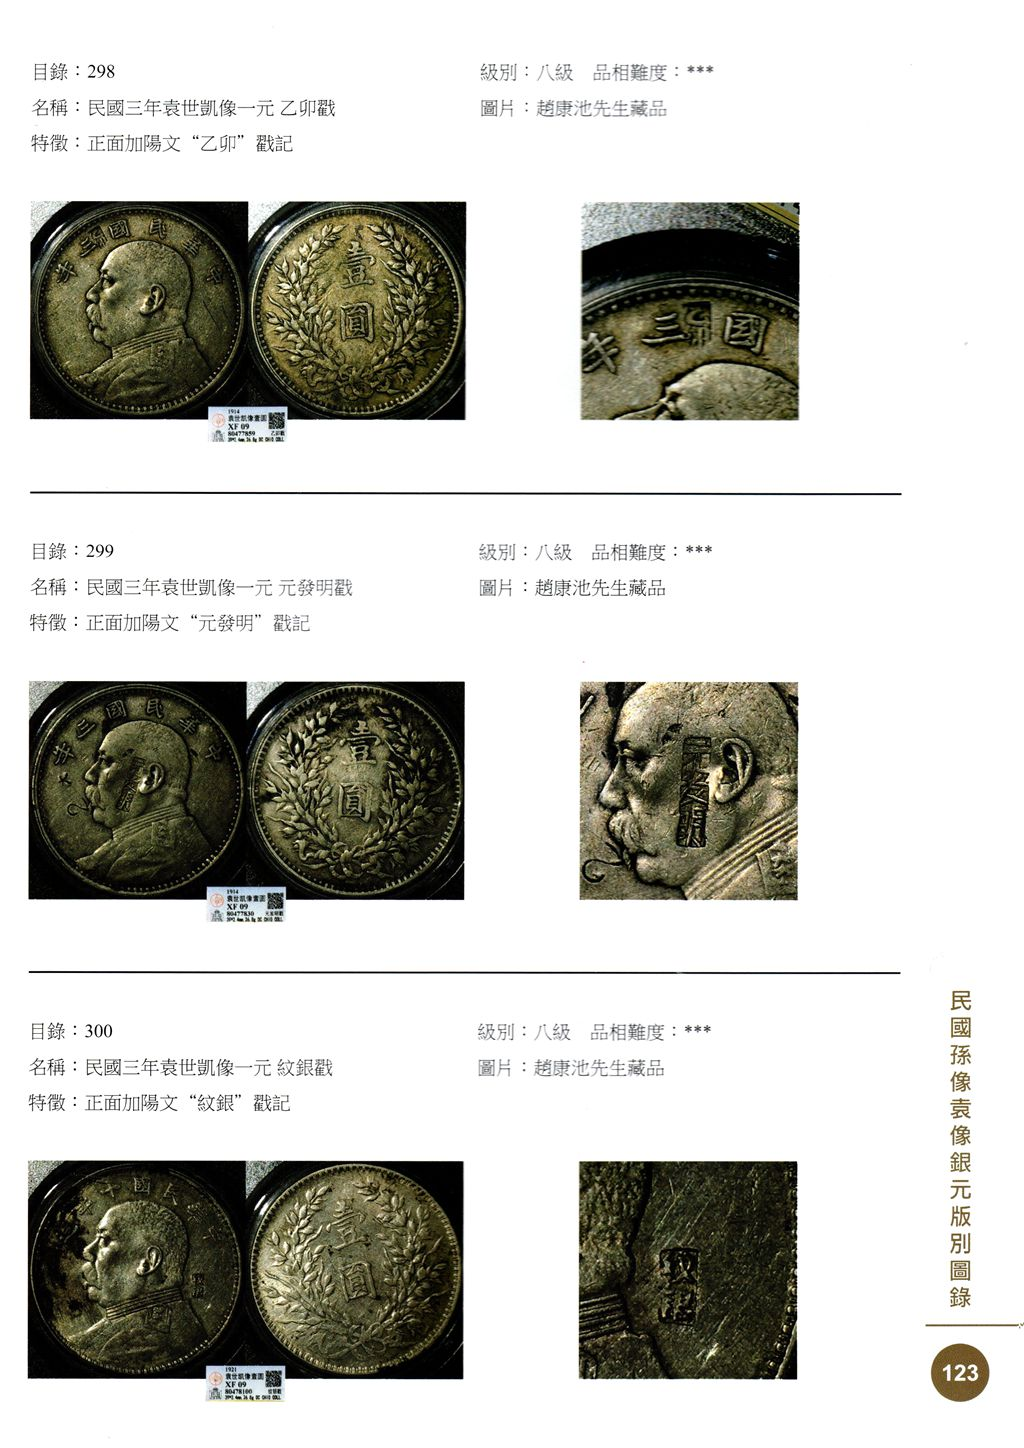 F1527, Catalog of Yuan Shih-Kai and Bust of Sun Yat-sen Silver Coins (2018)